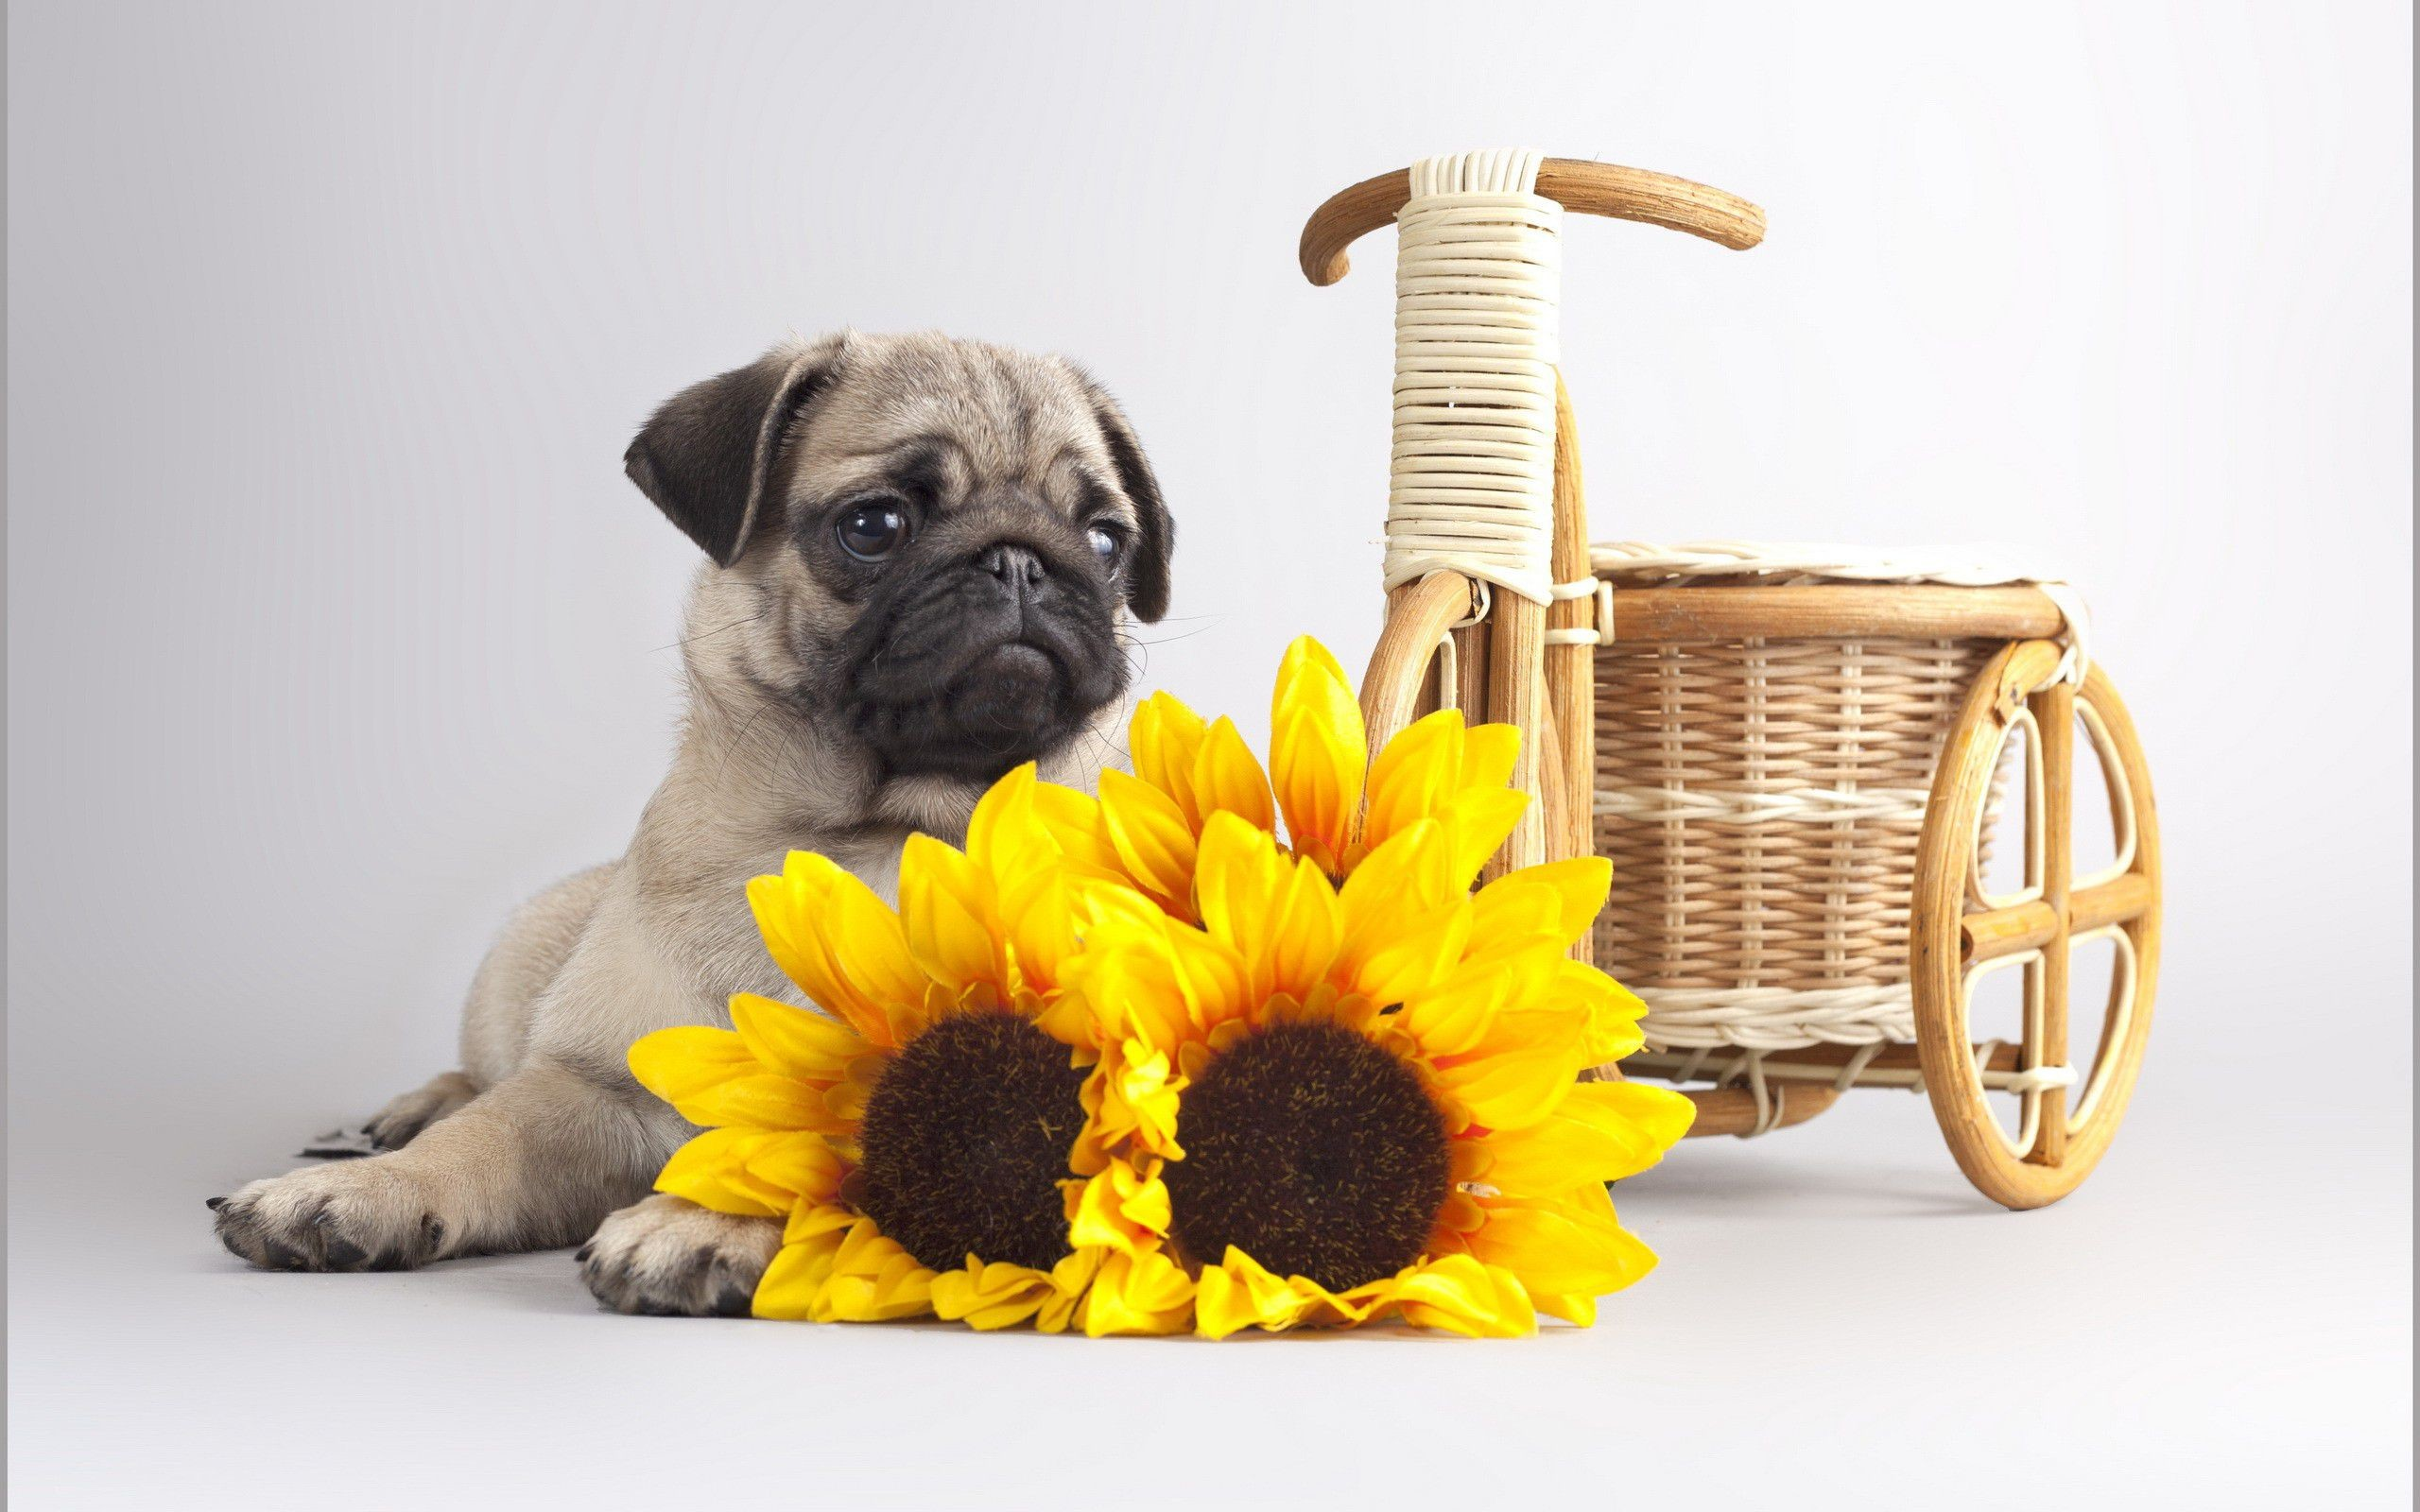 All Wallpapers Pug Dog Hd Wallpapers: Pug Puppy Wallpaper (66+ Images